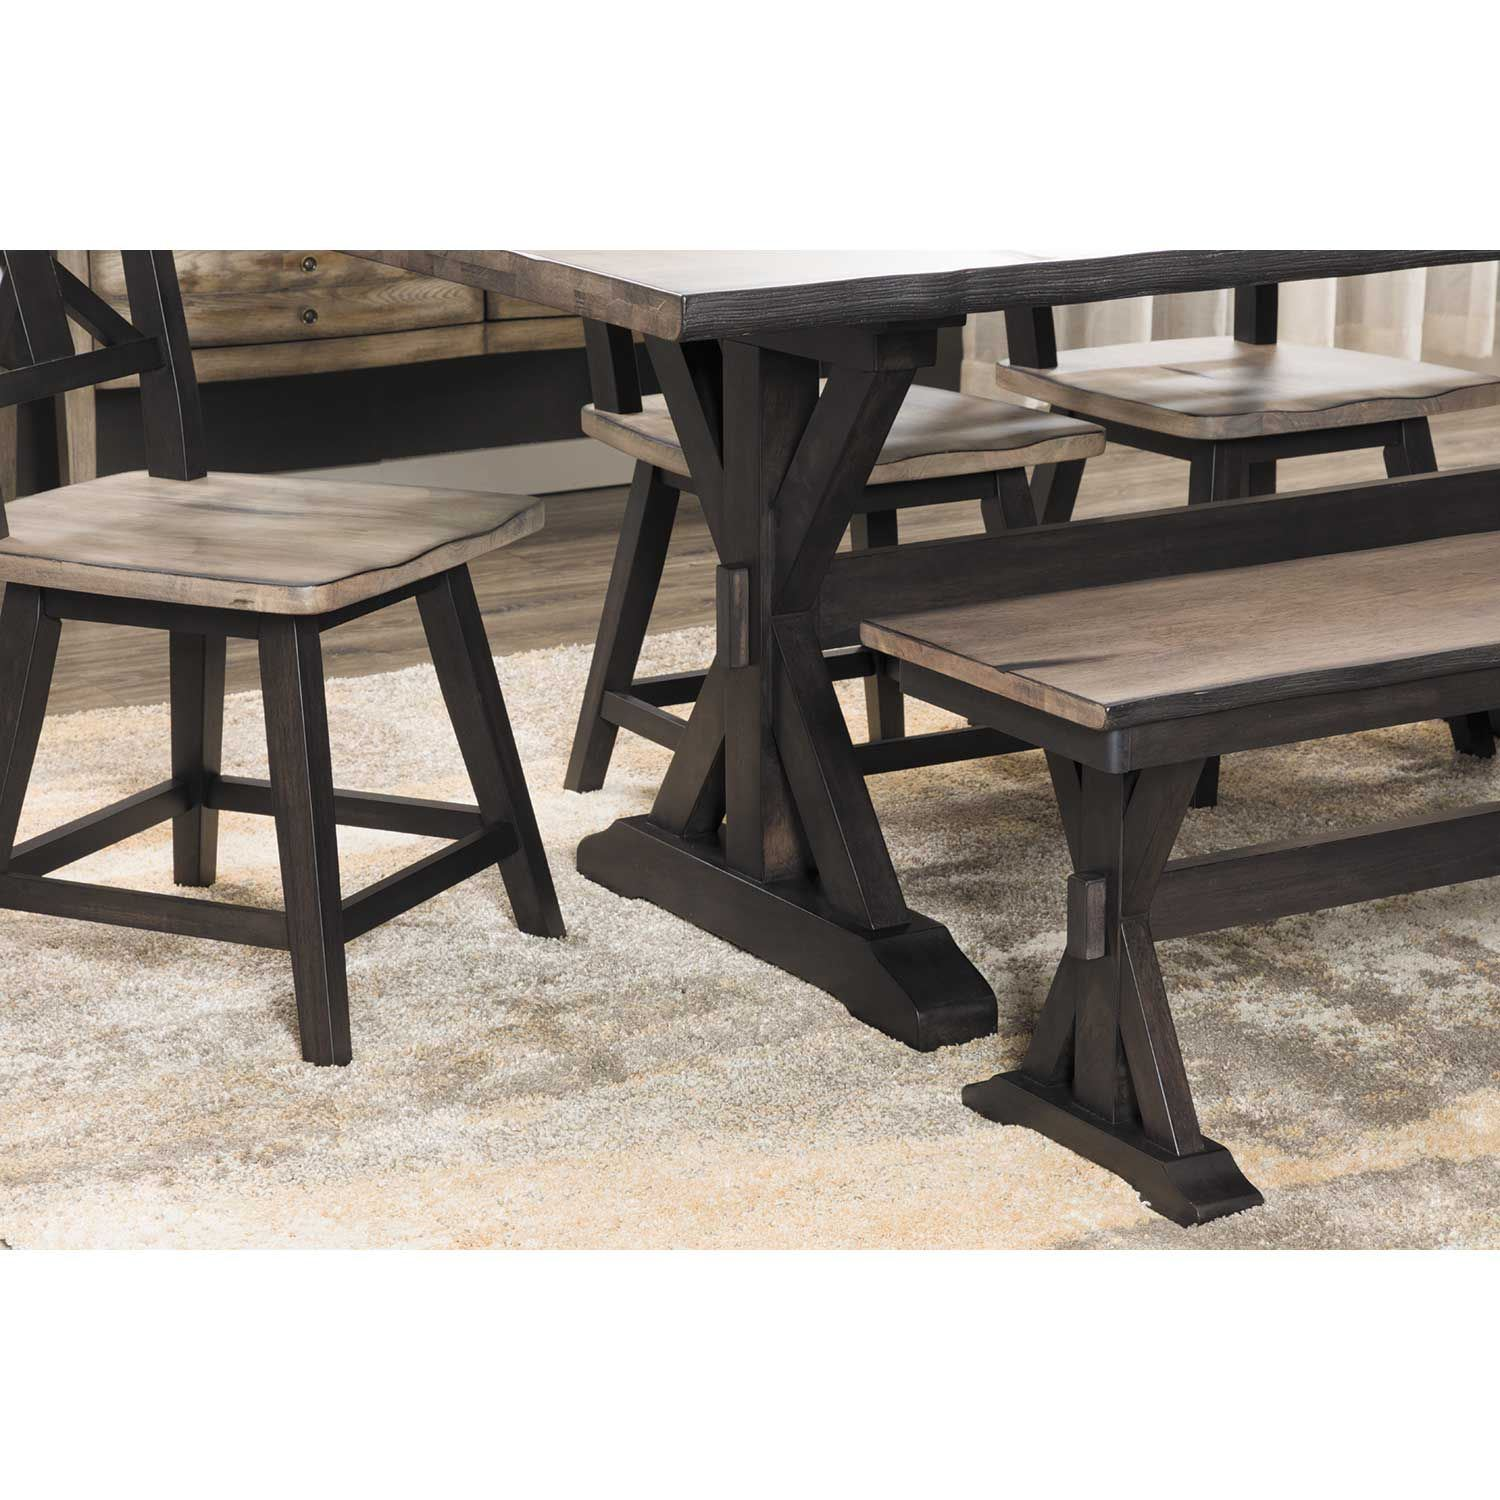 ... Picture Of Urban Farmhouse 6 Piece Dining Set